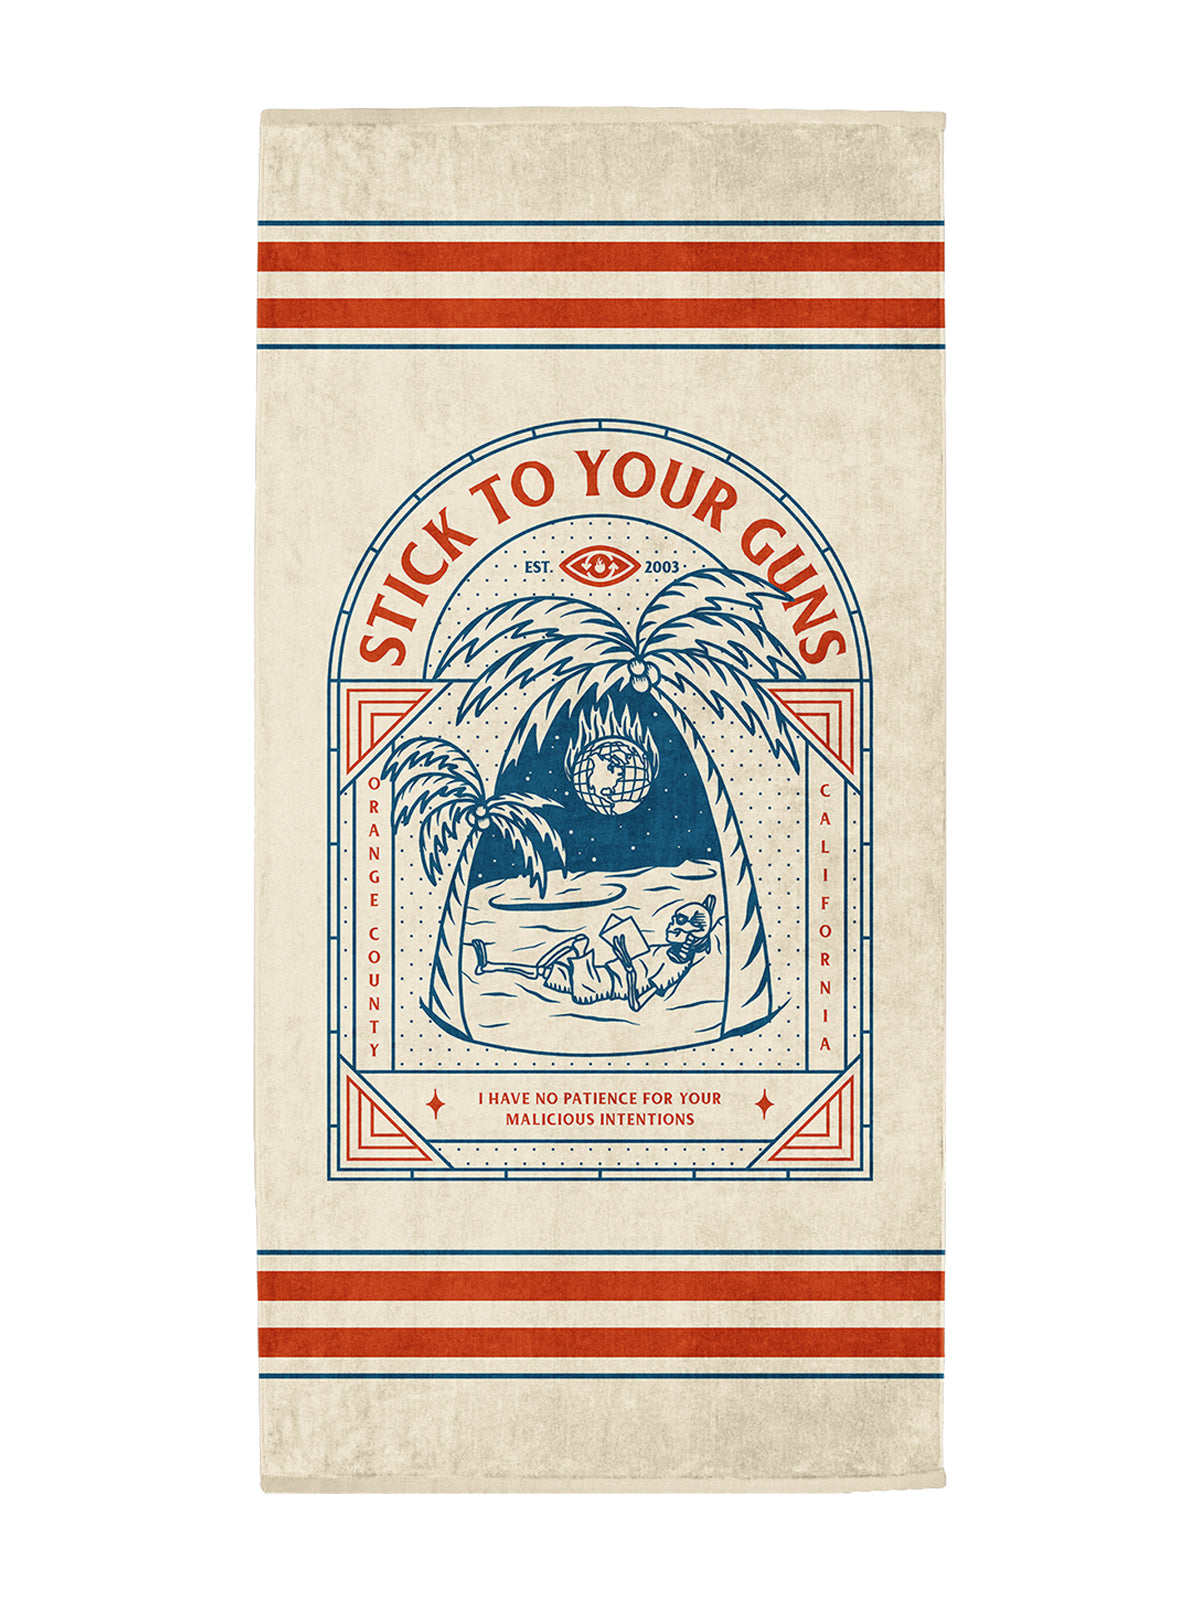 Stick to Your Guns - Beach Towel - Merch Limited